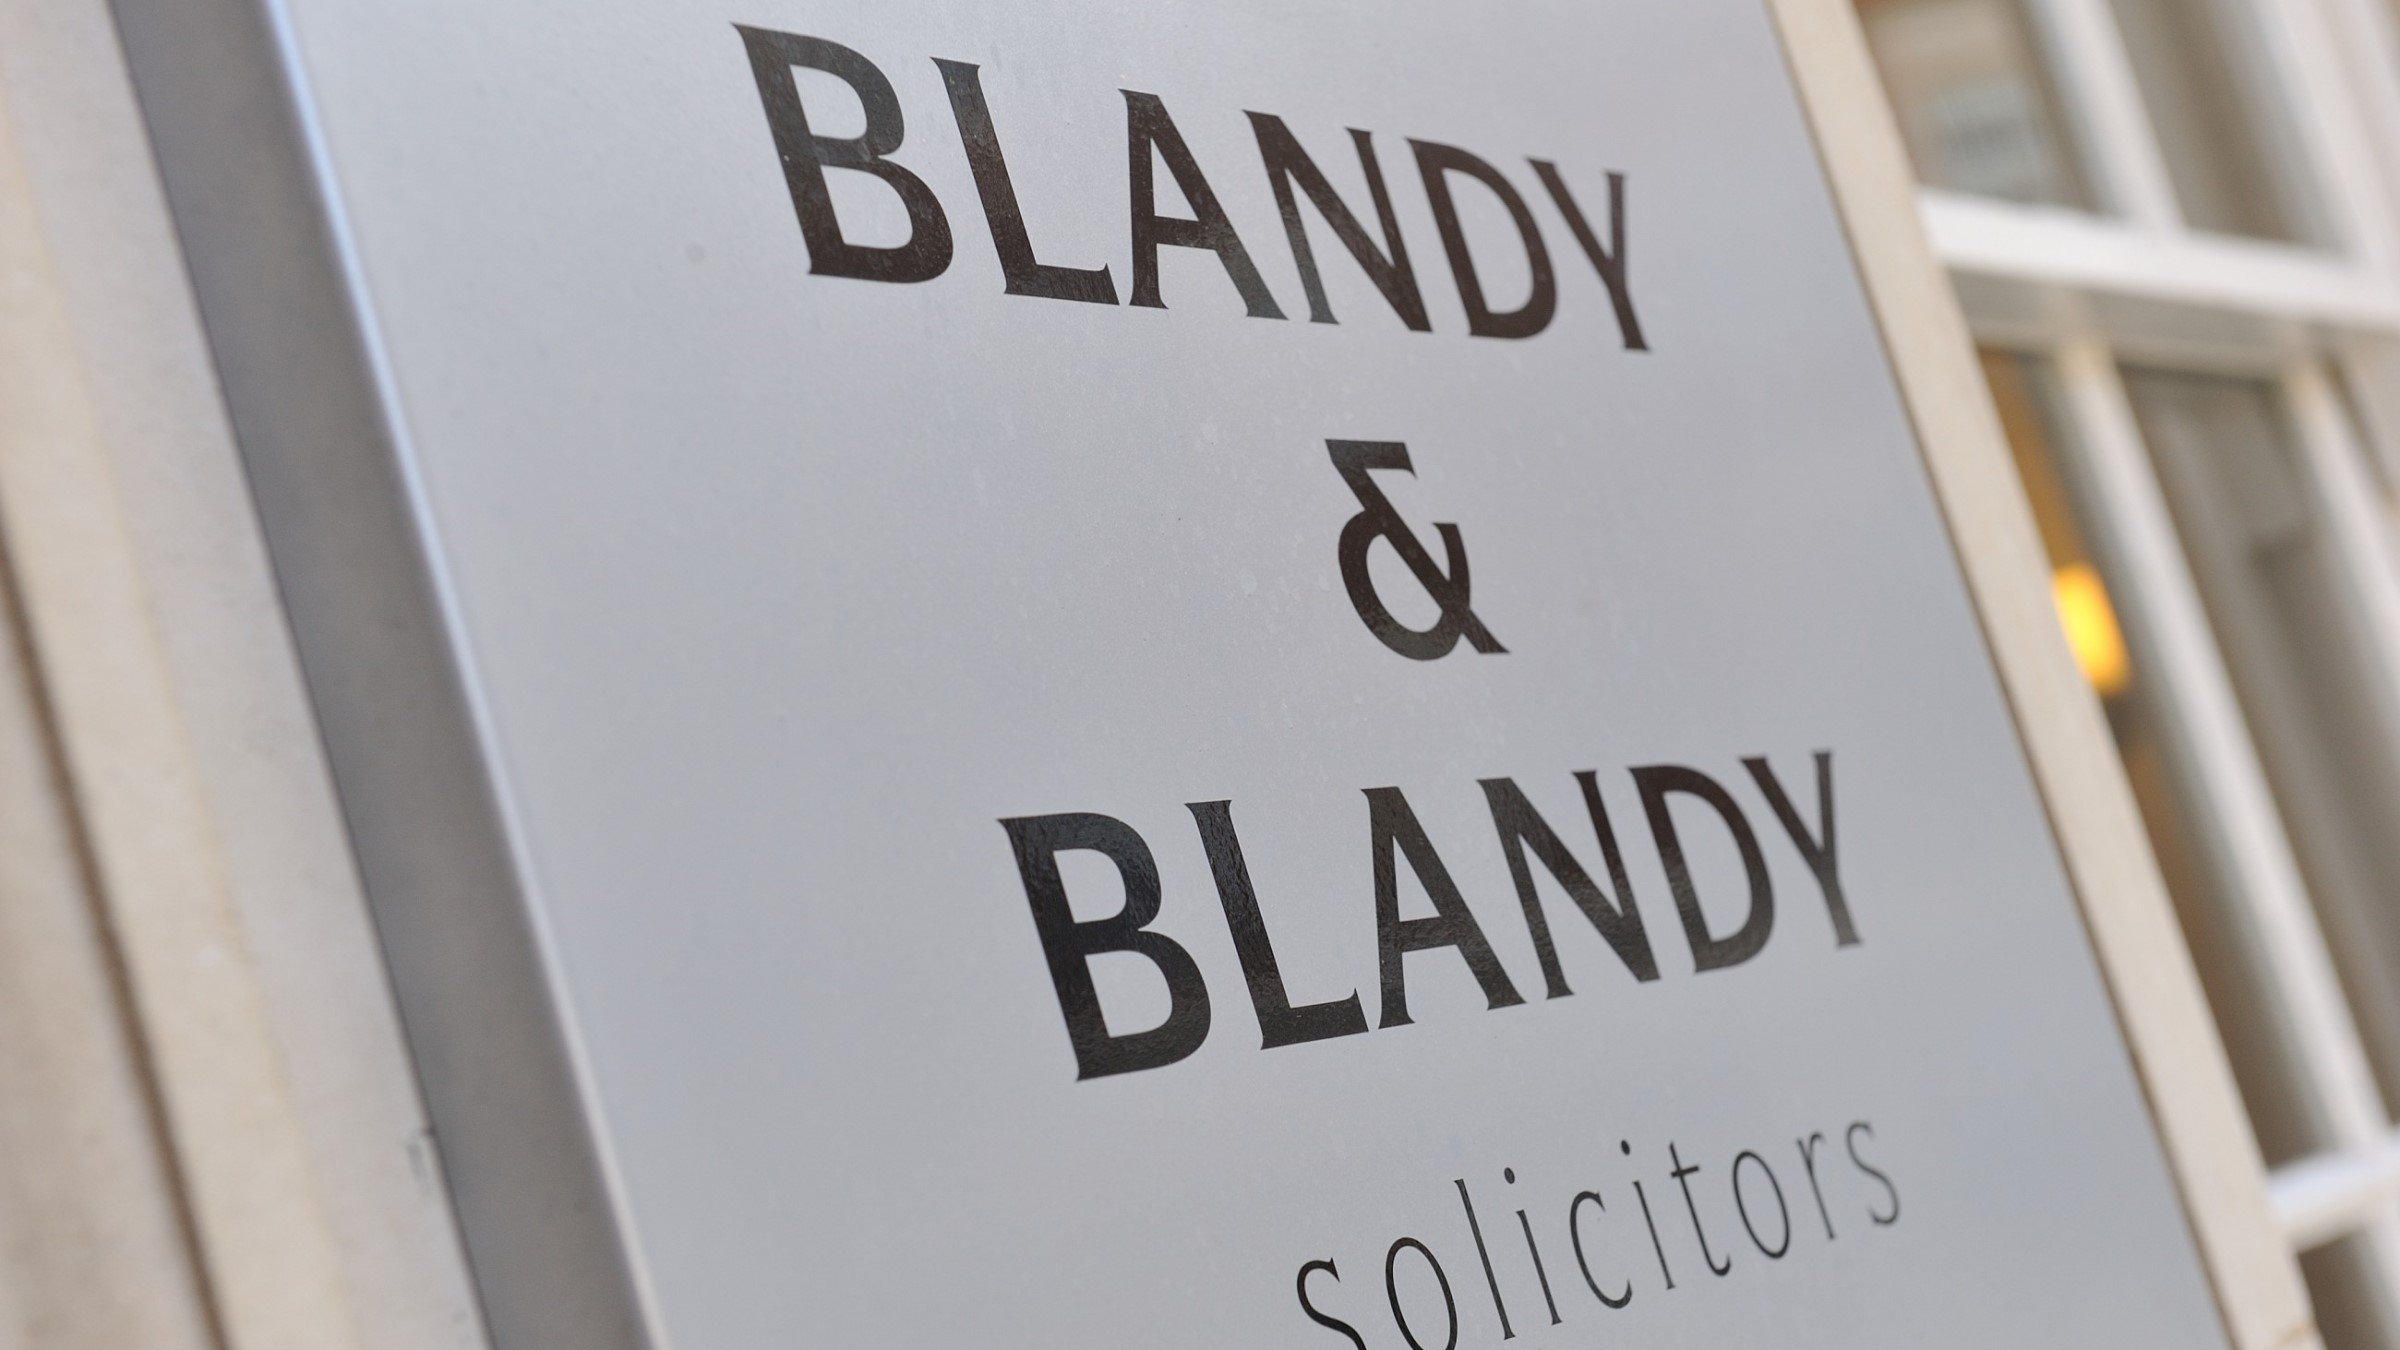 Blandy & Blandy Solicitors